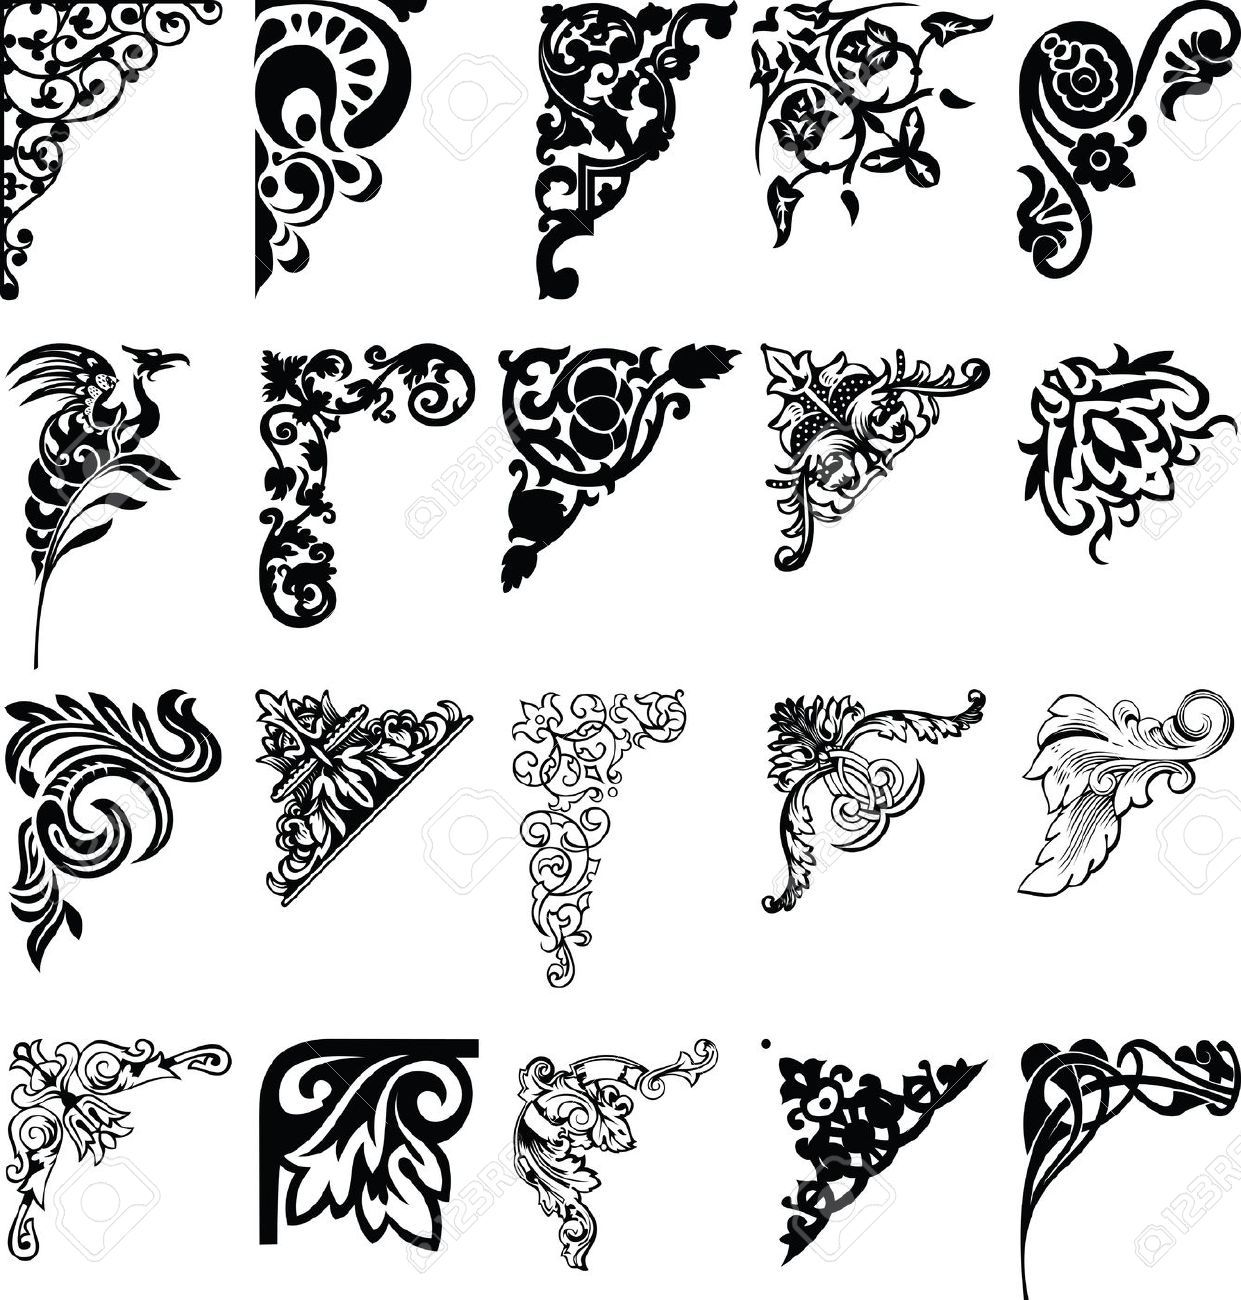 Australia And Amelies 3rd further 322174810993 together with Totem Pole Coloring Page besides 44050902580408239 also Every Embellishment. on western decor crafts